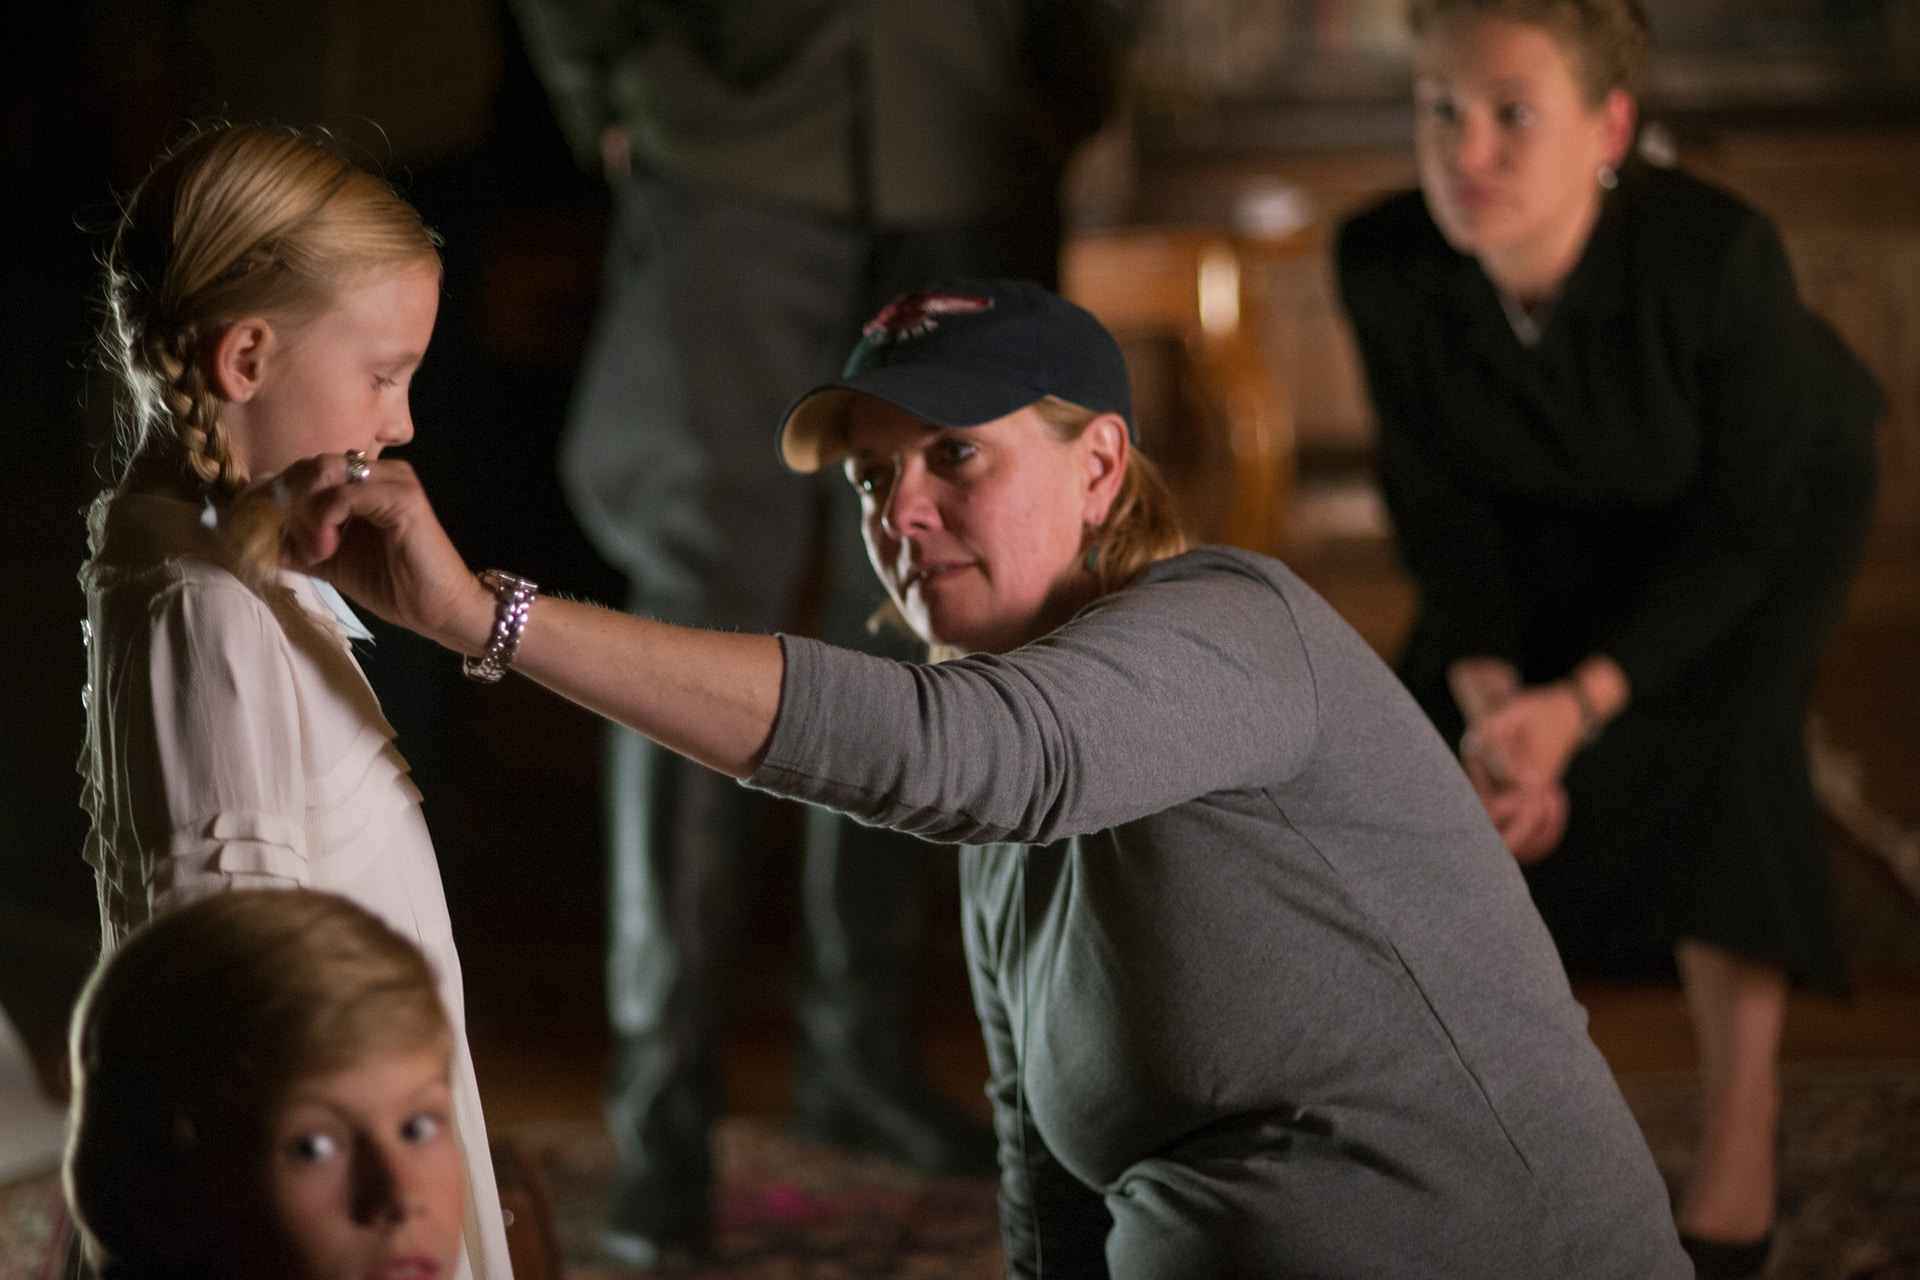 Behind the scenes on the set of X Company Season 3 with Director Amanda Tapping and Julia Folta (Ania).